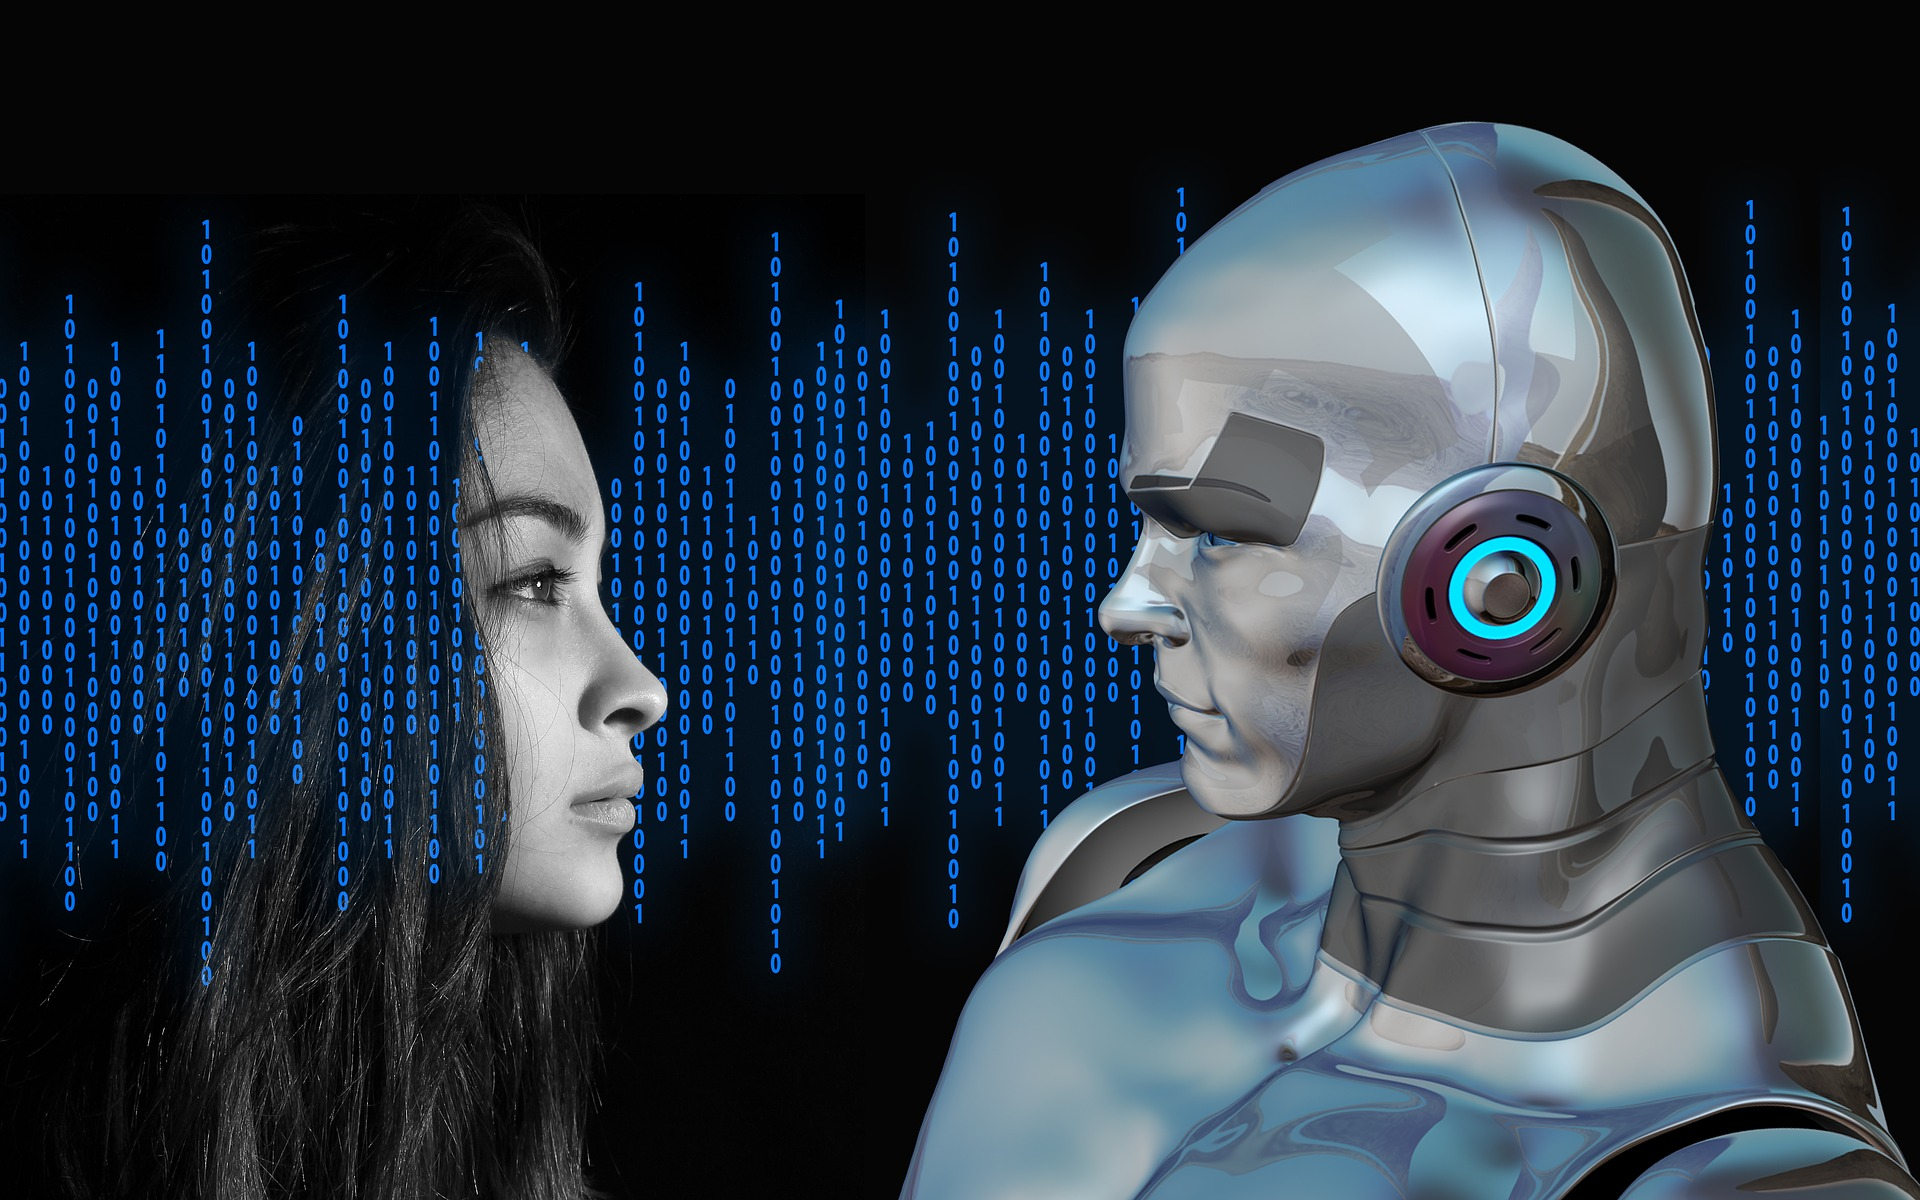 UAE sets the bar high with focus on industries of the future such as AI